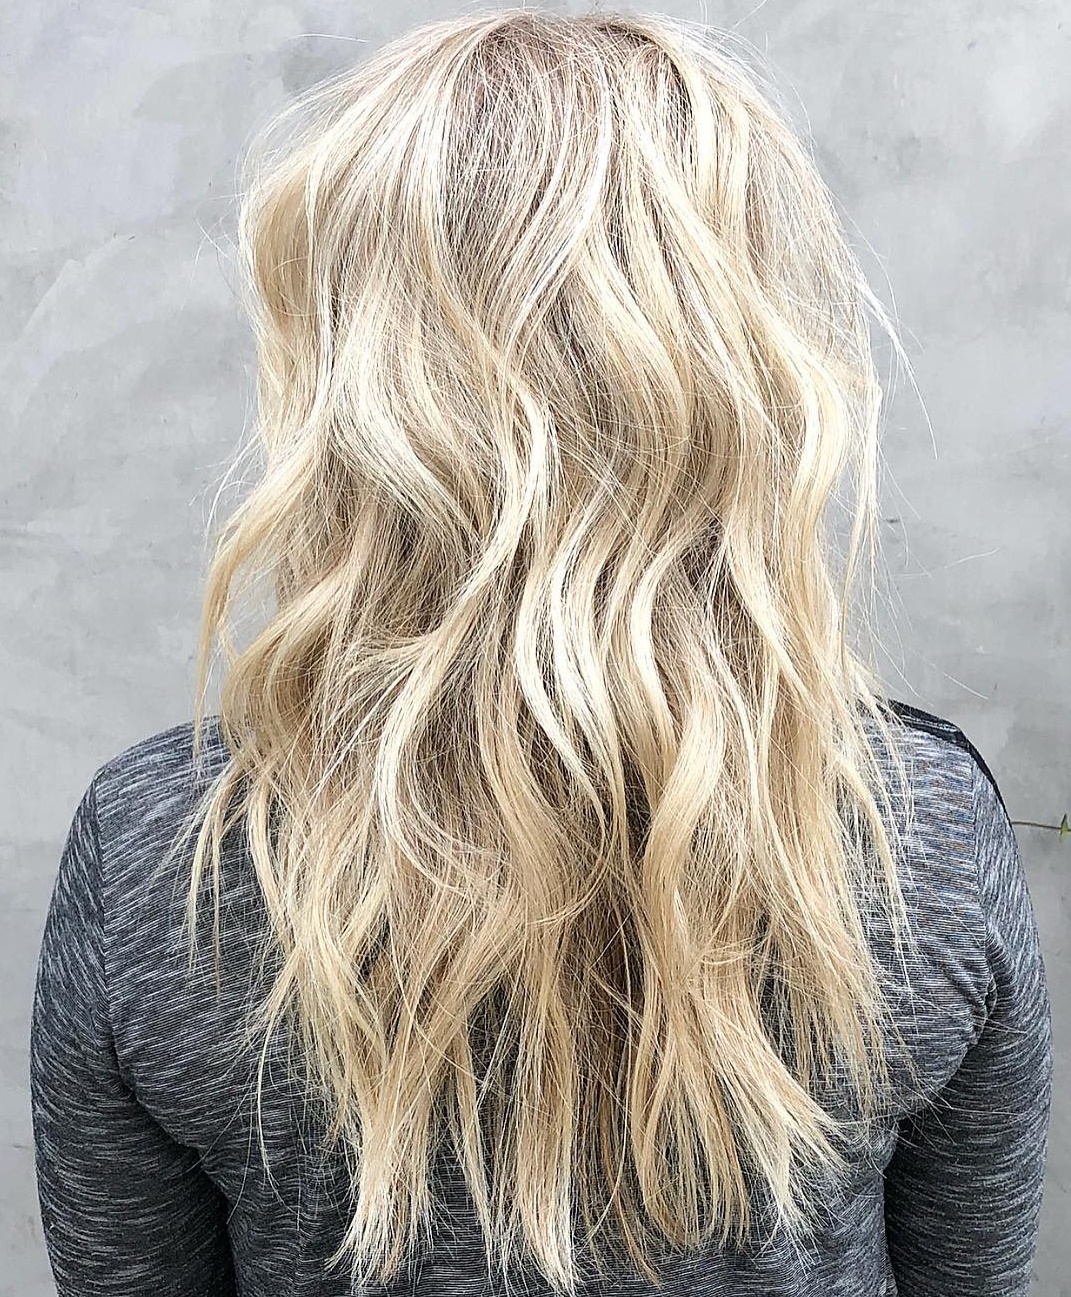 Sexy Blonde Hairstyle with Bedhead Curls